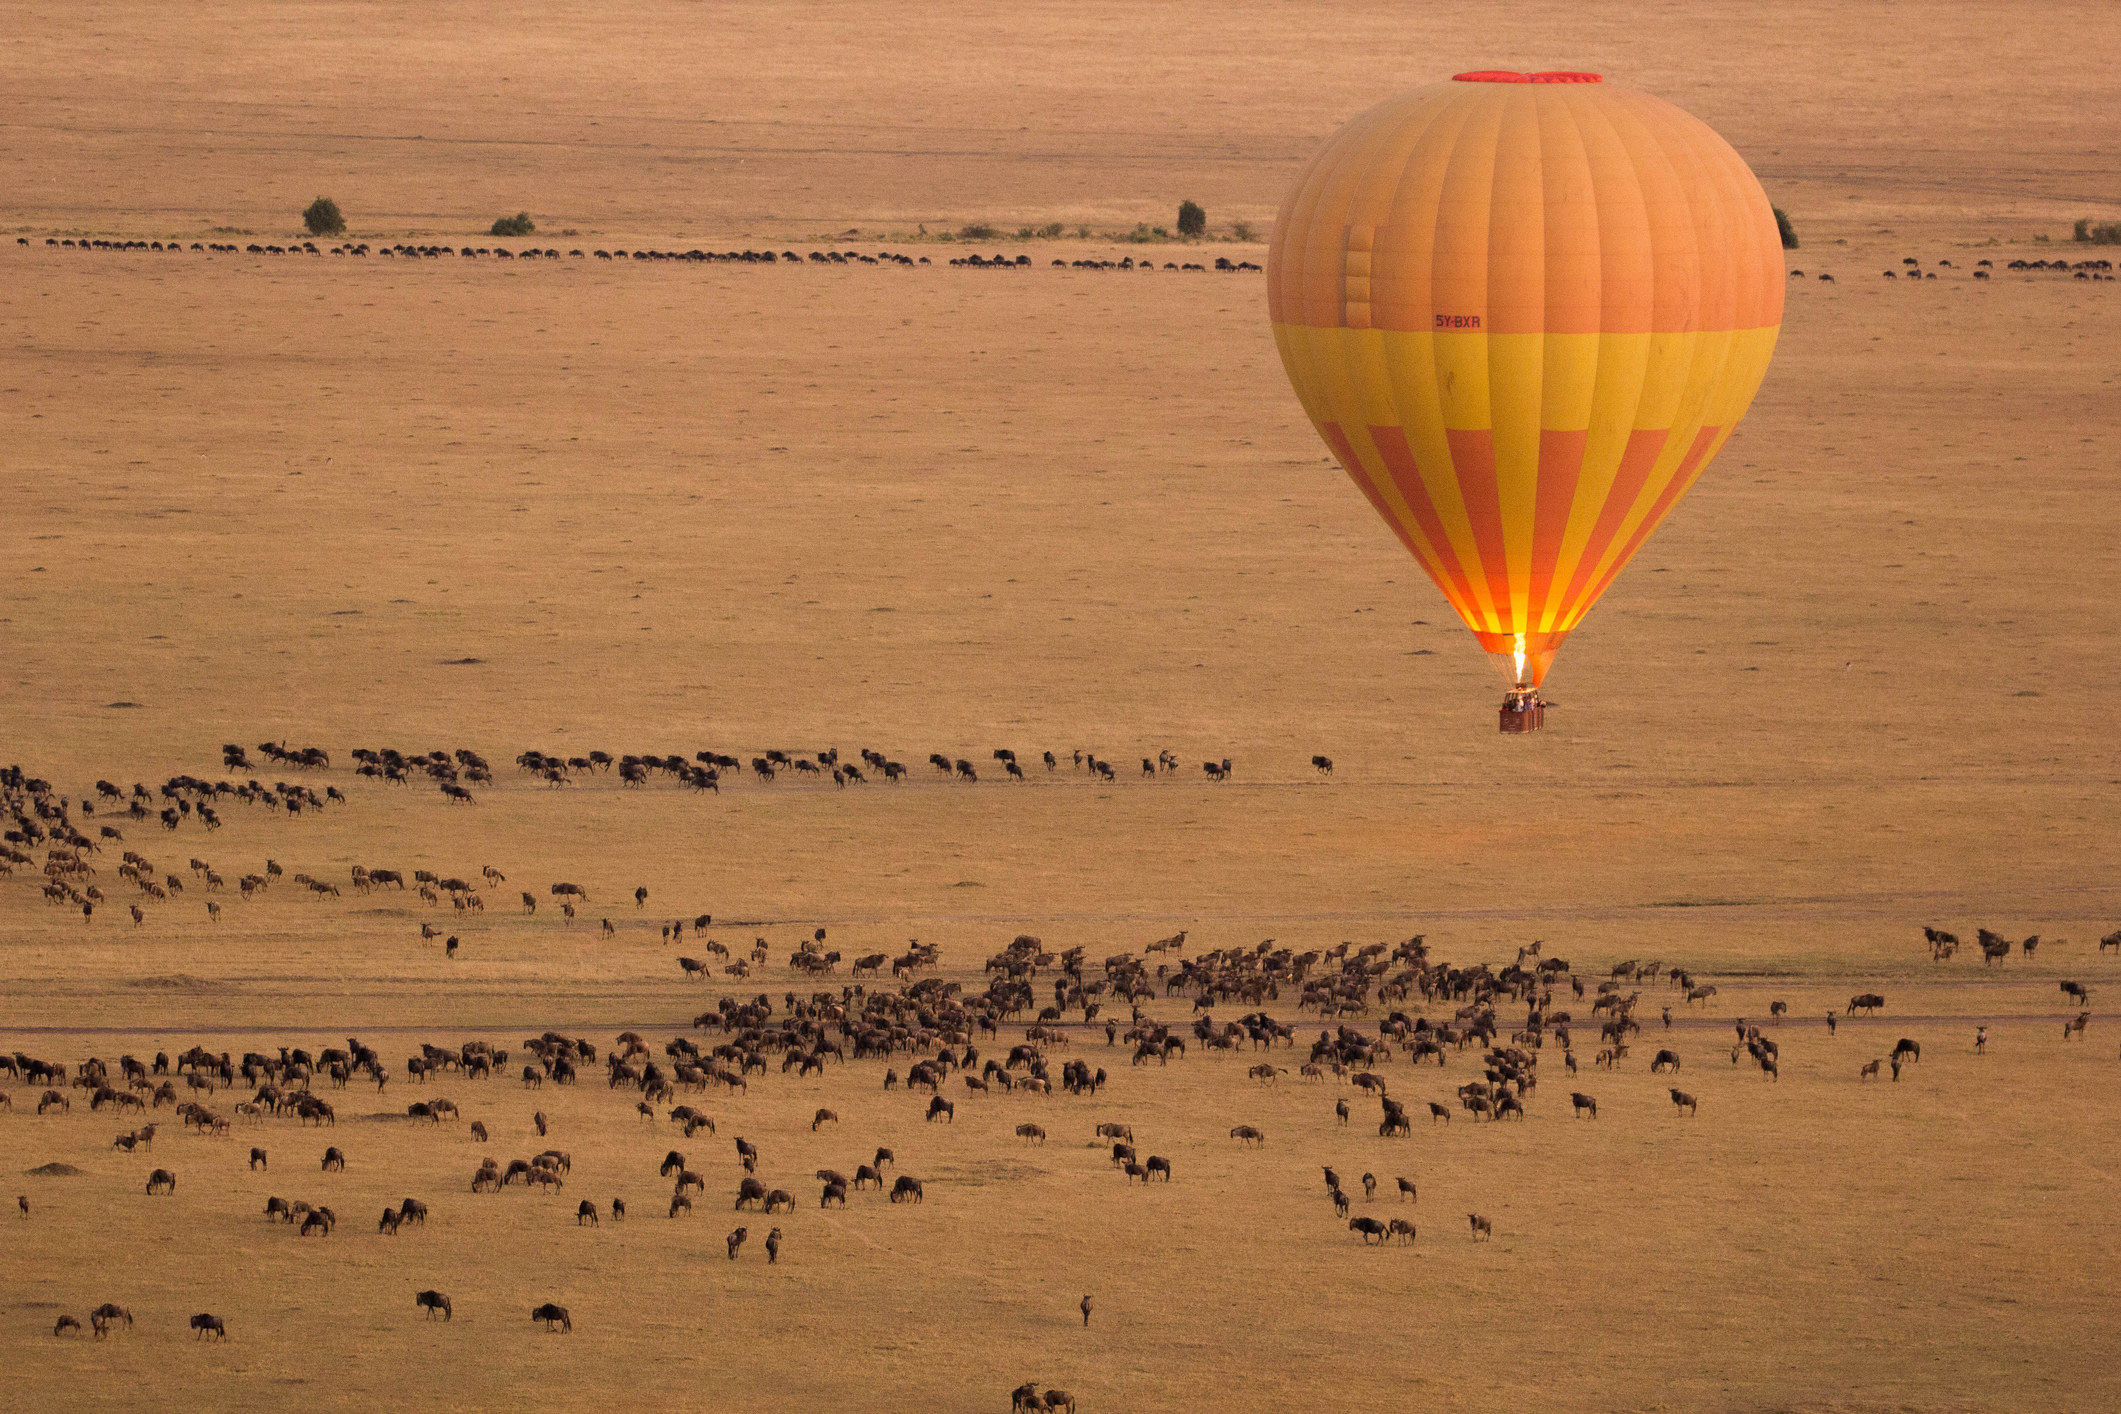 A hot air balloon hovering above a giant grassy plain covered in hundreds of animals